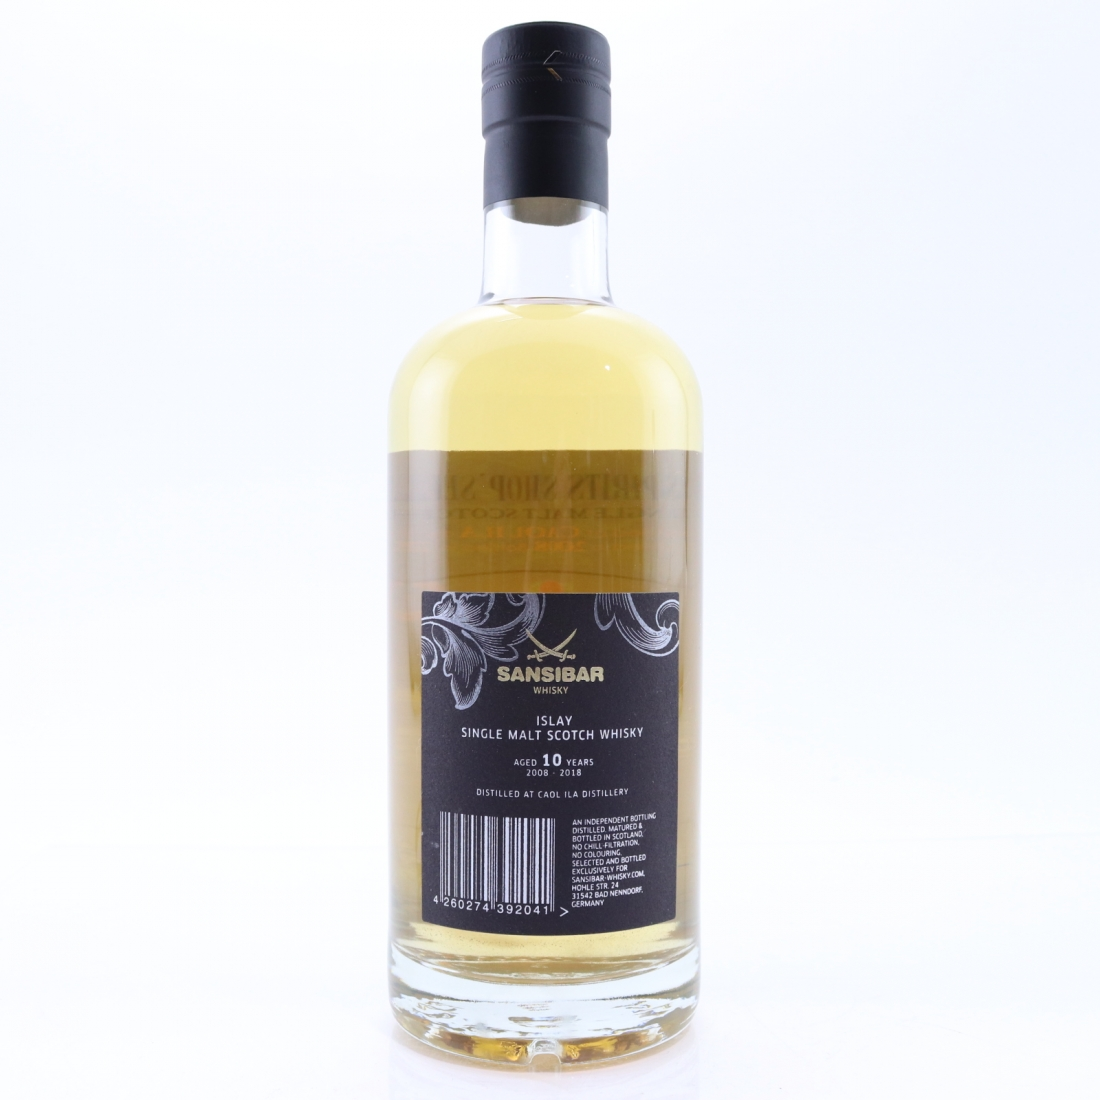 Caol Ila 2008 Sansibar 10 Year Old / Spirts Shop' Selection